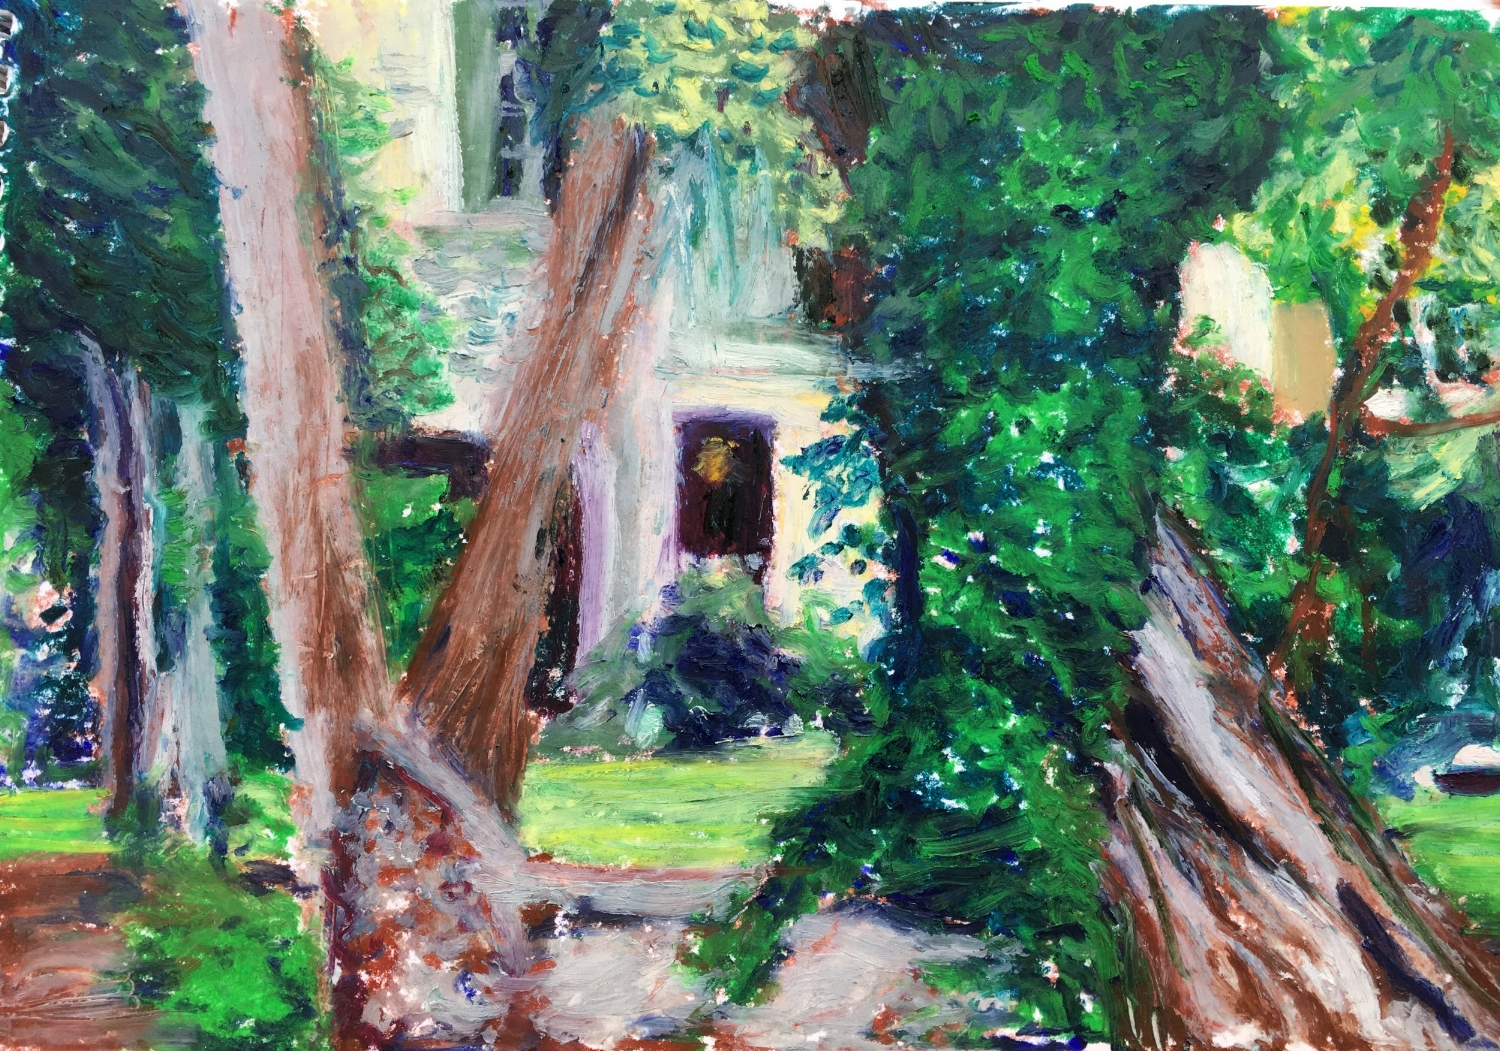 Oldest Tree in Paris at Square Rene Viviani (Oil Pastel 6x9 in - June 13 2018)